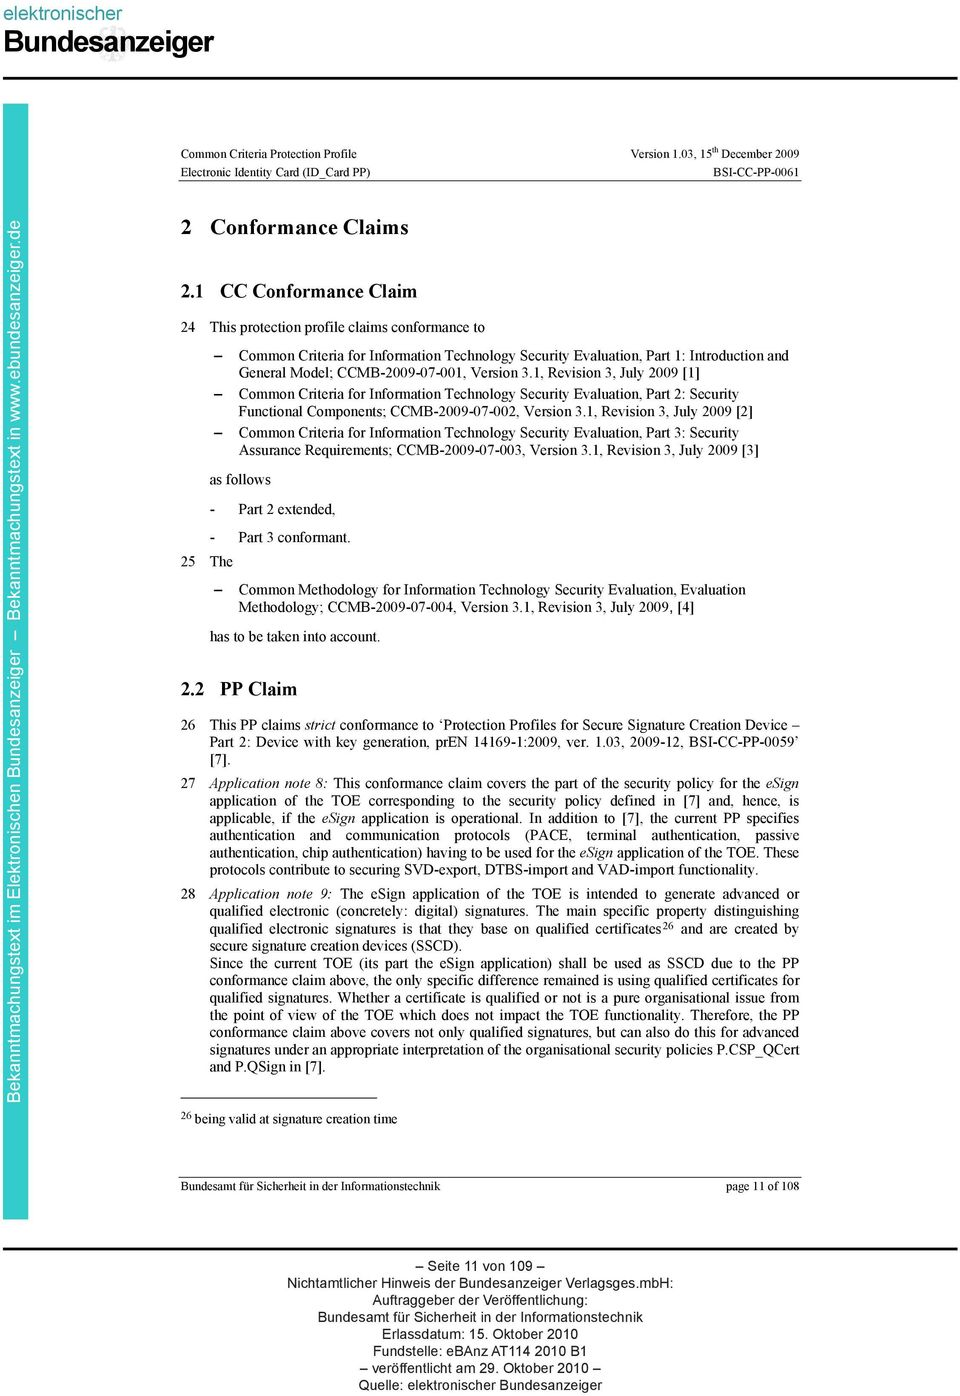 Version 3.1, Revision 3, July 2009 [1] Common Criteria for Information Technology Security Evaluation, Part 2: Security Functional Components; CCMB-2009-07-002, Version 3.